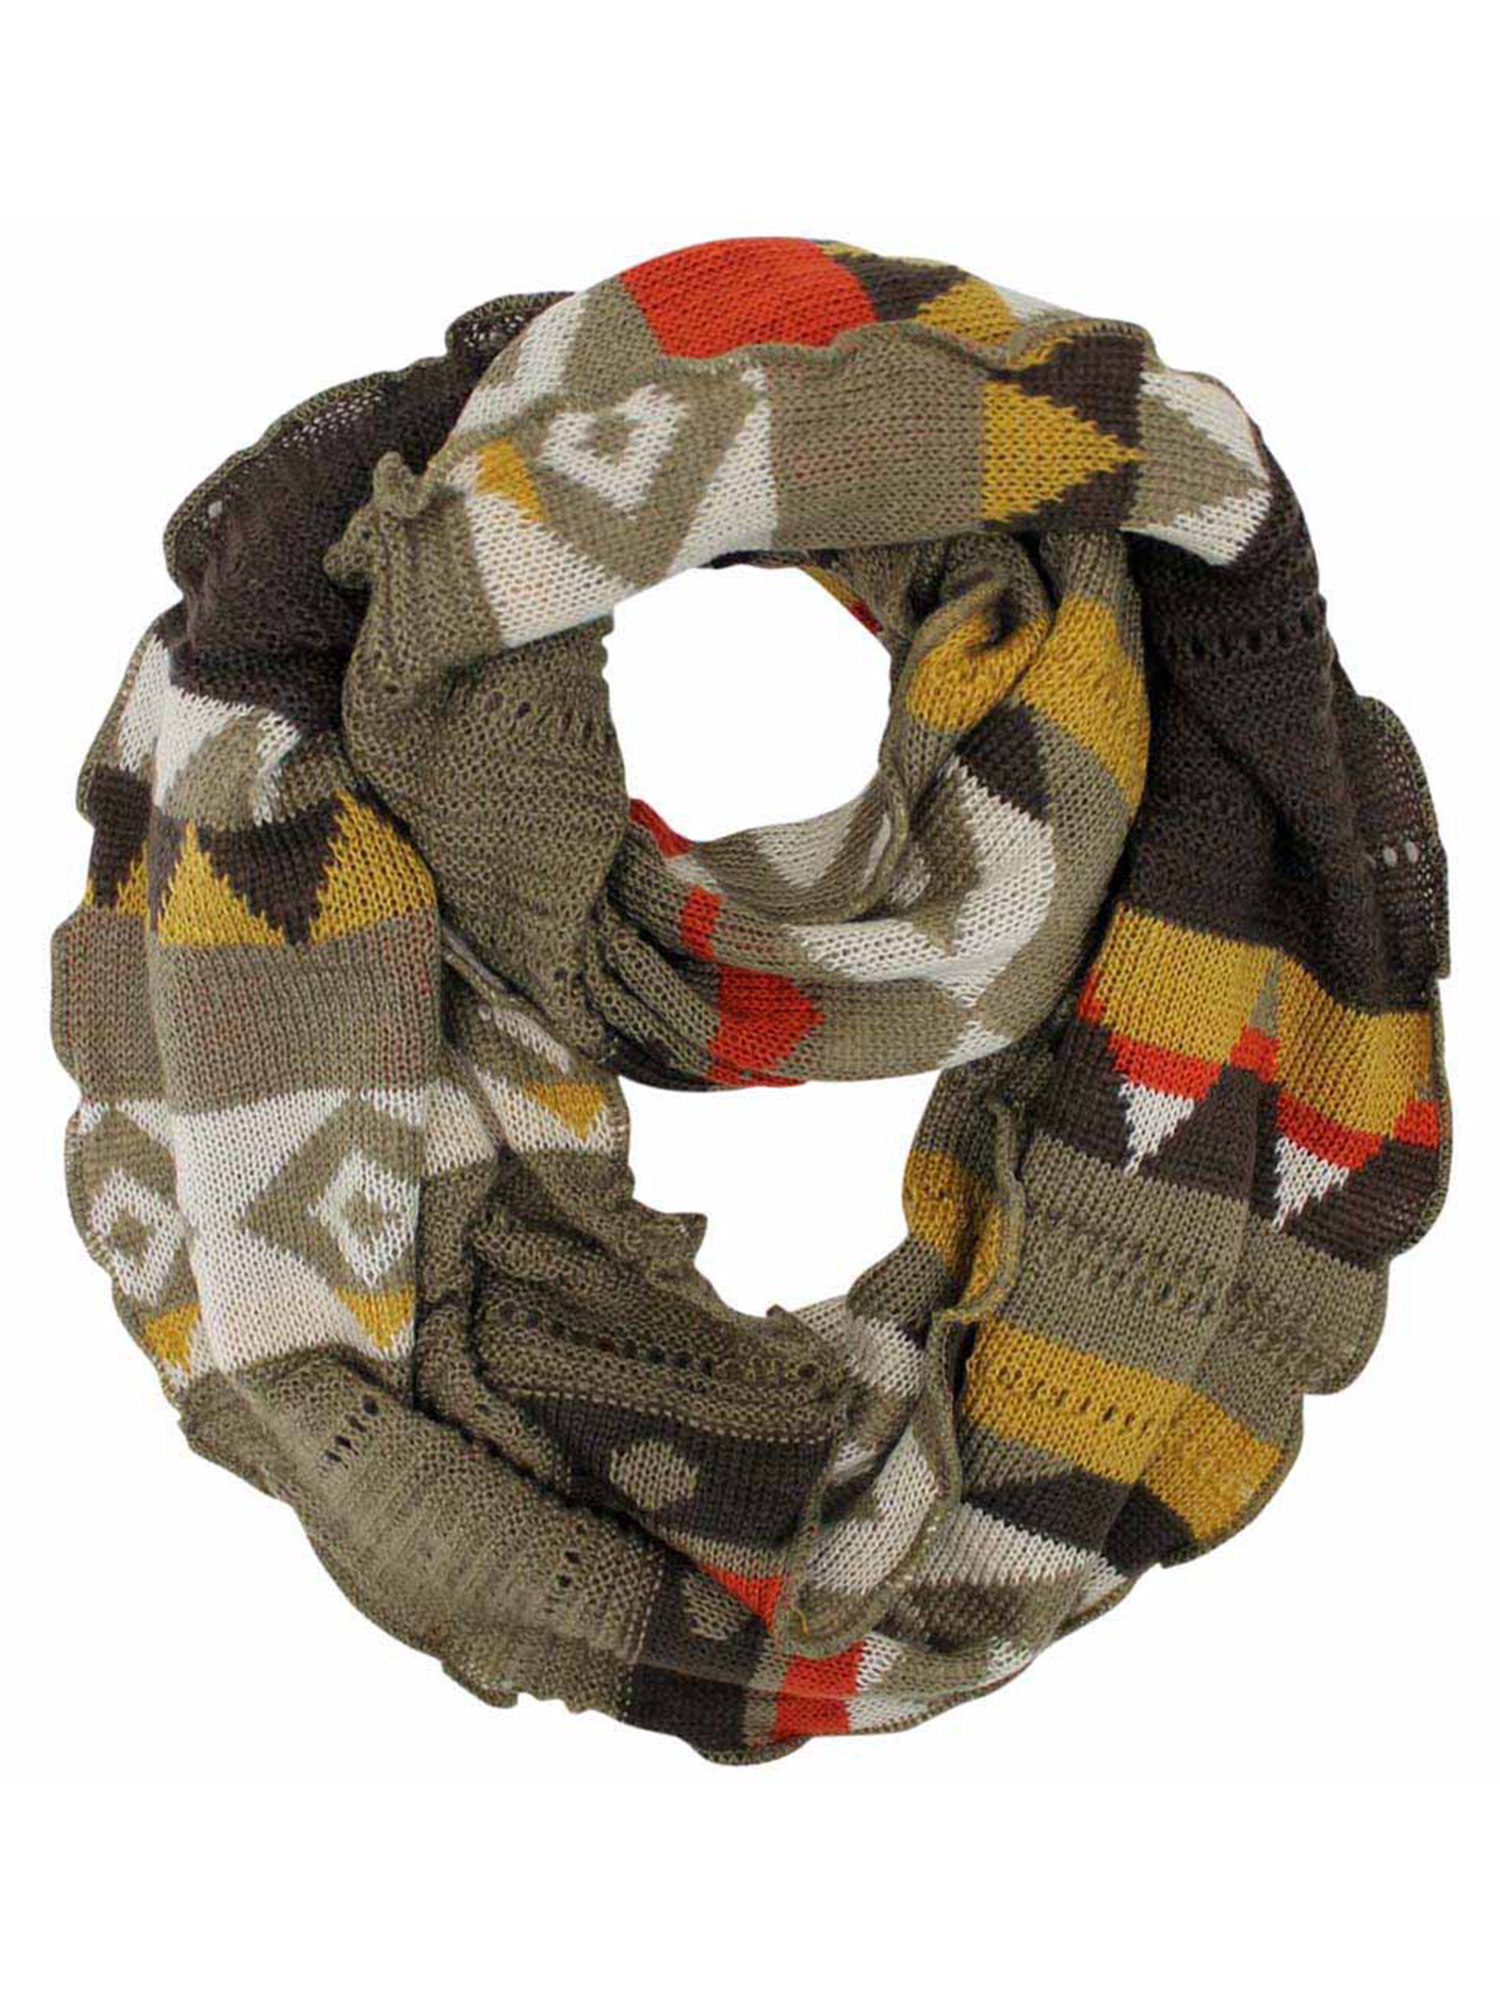 Colorful Knit Ring Infinity Scarf With Ruffled Edge Ebay